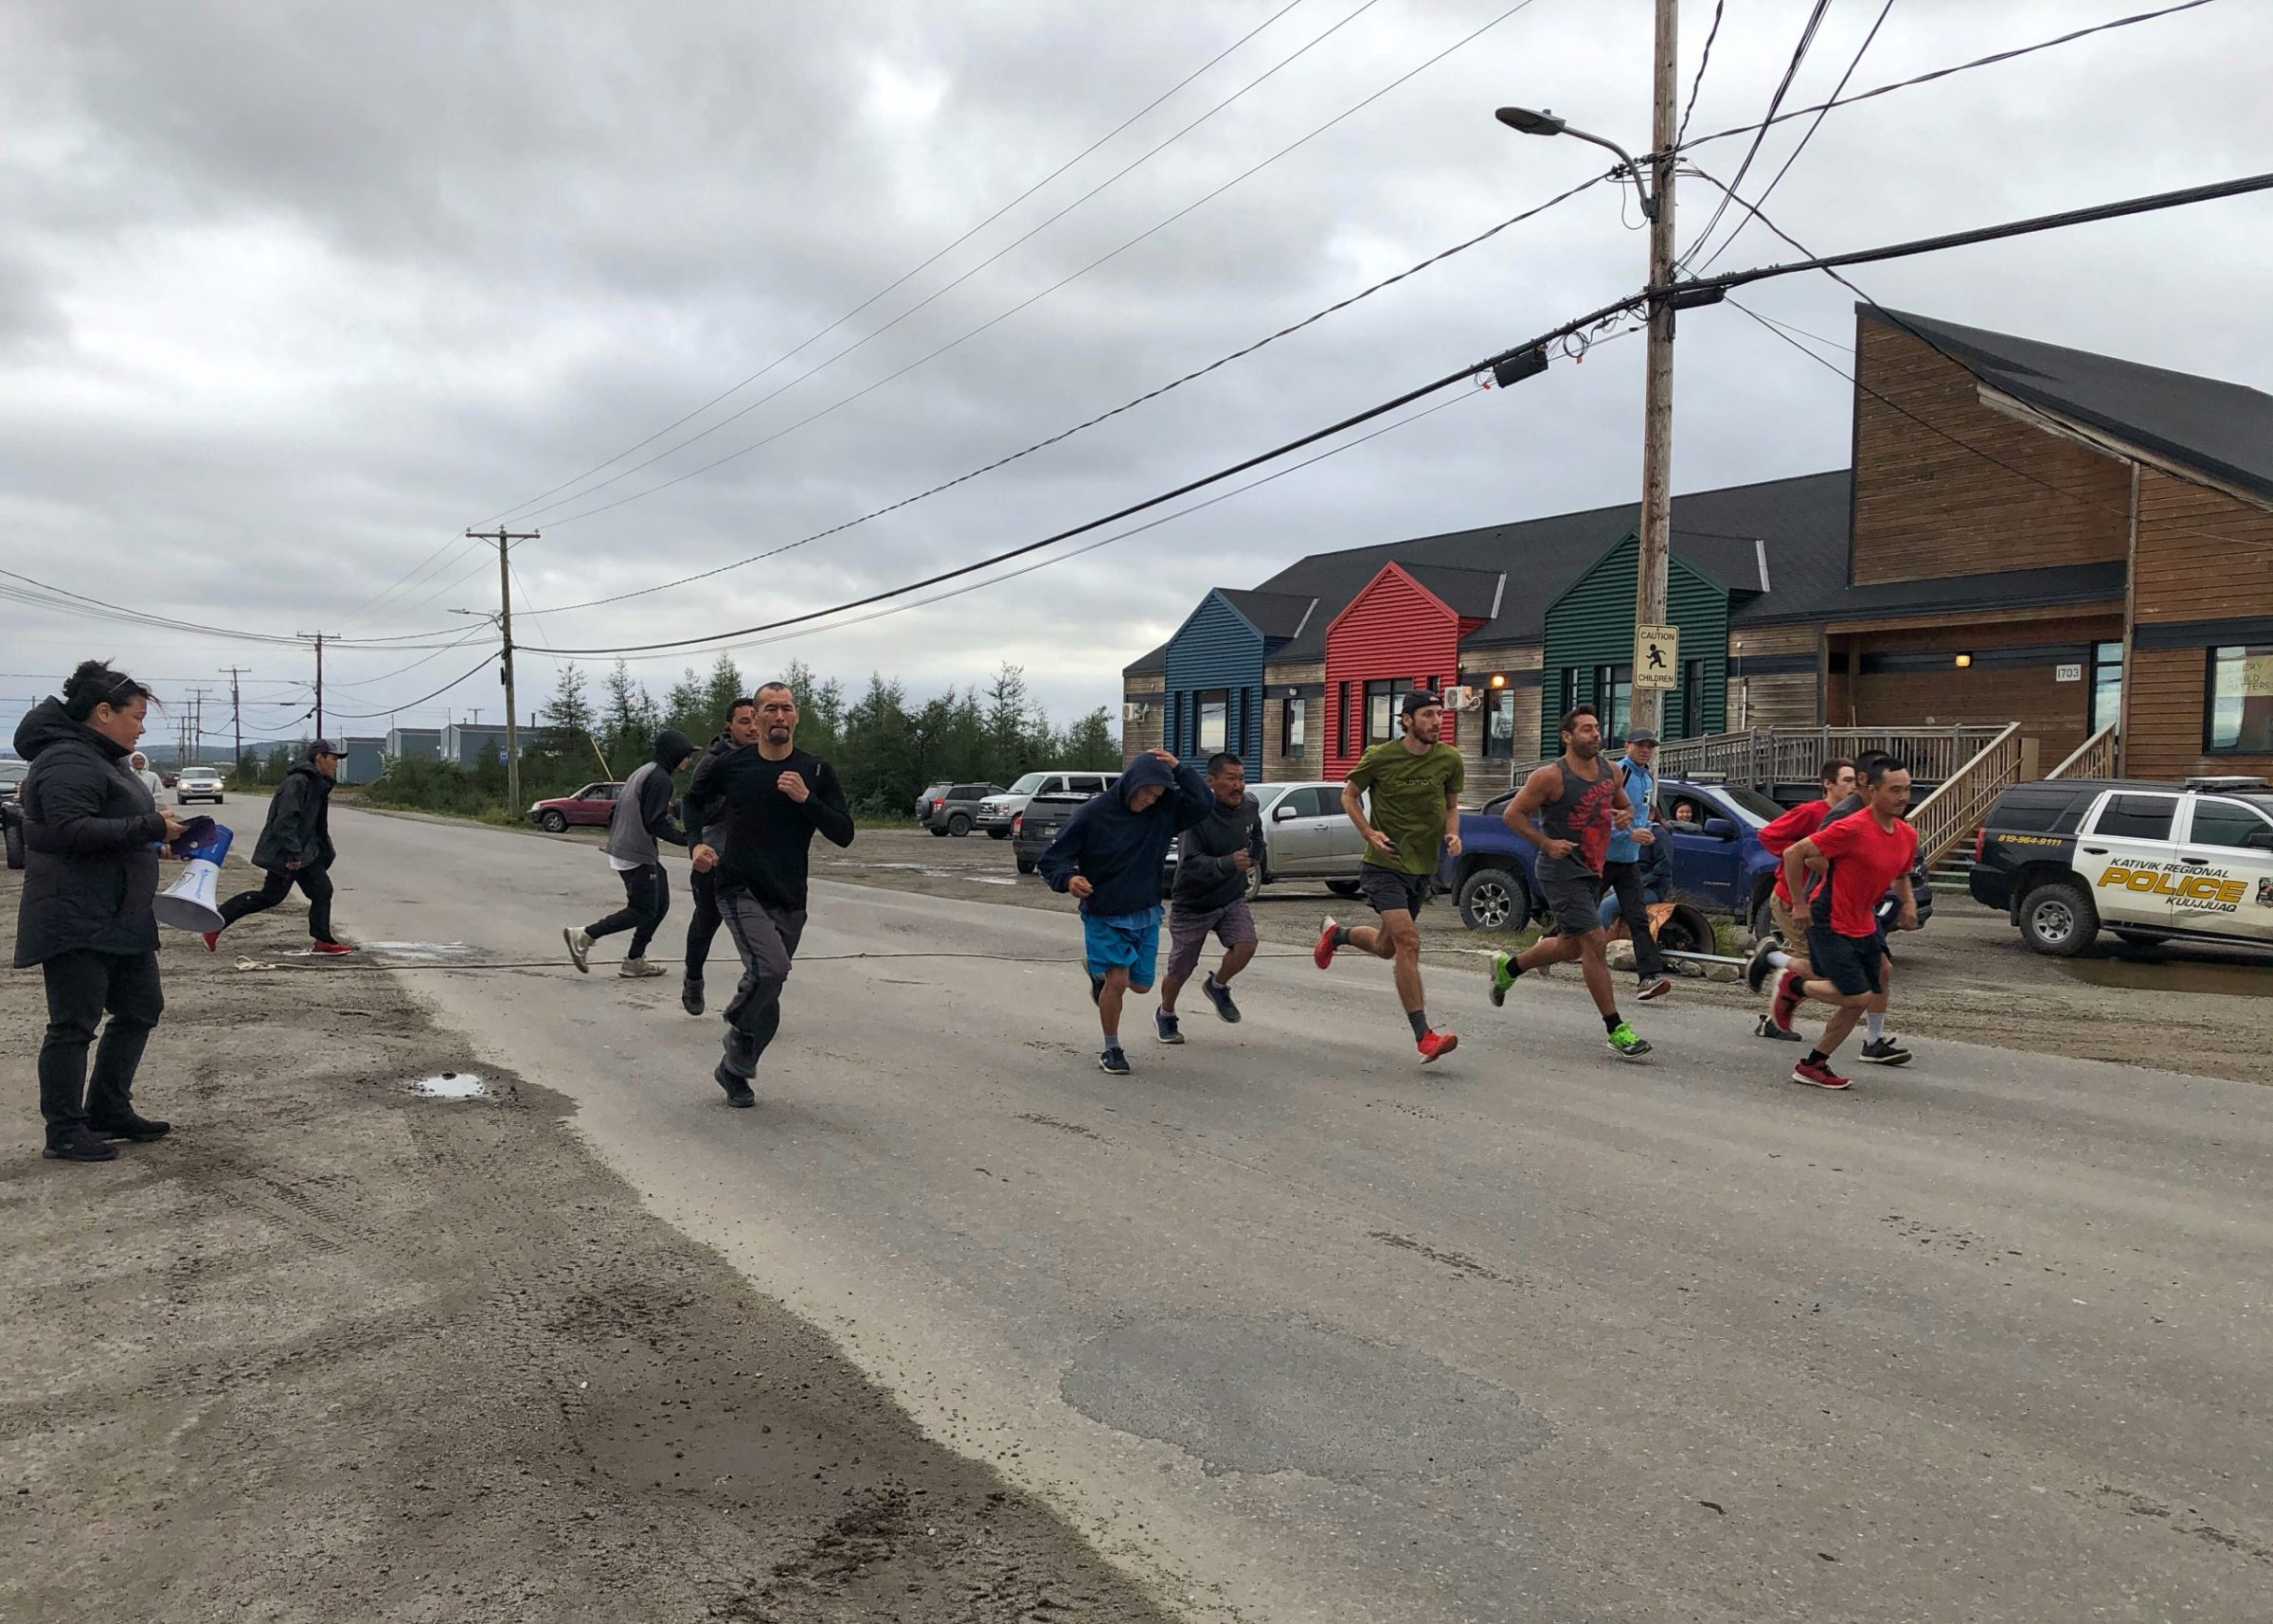 Kuujjuaq residents take part in a race organized by the local recreation committee on Monday, Aug. 16. The route ran just over 10 kilometres, from the Tumiapiit Daycare to the fork in the roads leading to the marina and back. Albert Roy took the top prize for men under-39, with a time of 45 minutes and 40 seconds. Nicolas Gauthier won the men's over-40 category, with 54 minutes and 20 seconds. Tusaajiapik Imbeault won the women's under-40 category with one hour, 8 minutes and 23 seconds. And Isabelle Dubois won the women's over-50 category with one hour, 19 minutes and 32 seconds. The winners of each category received $500. (Photo by Isabelle Dubois)